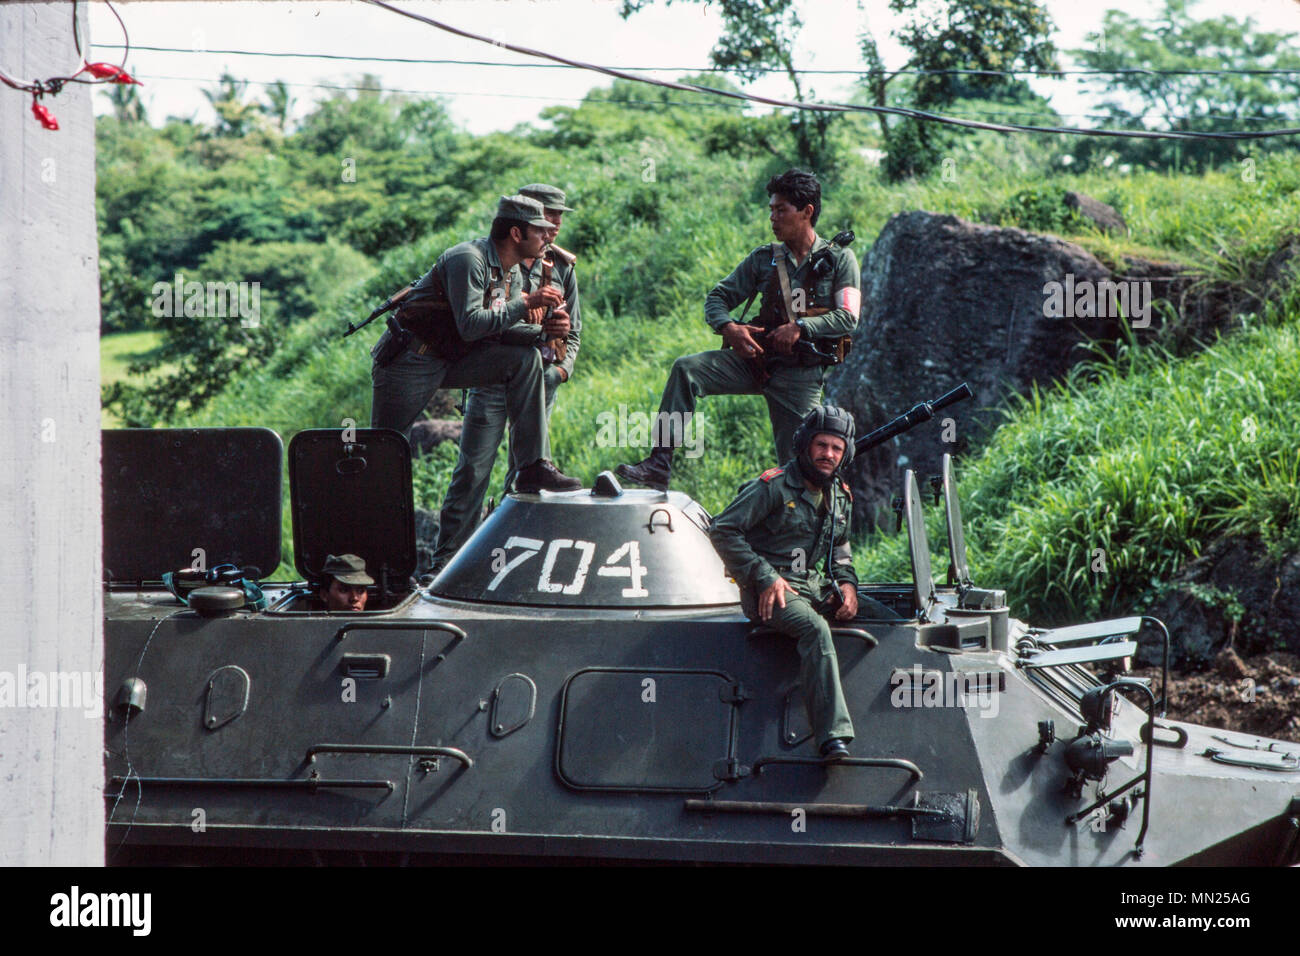 Managua, Nicaragua, June 1986; Nicaraguan FSLN troops with their amoured APC during celebrations to commeorate the overthrow of Somoza. - Stock Image